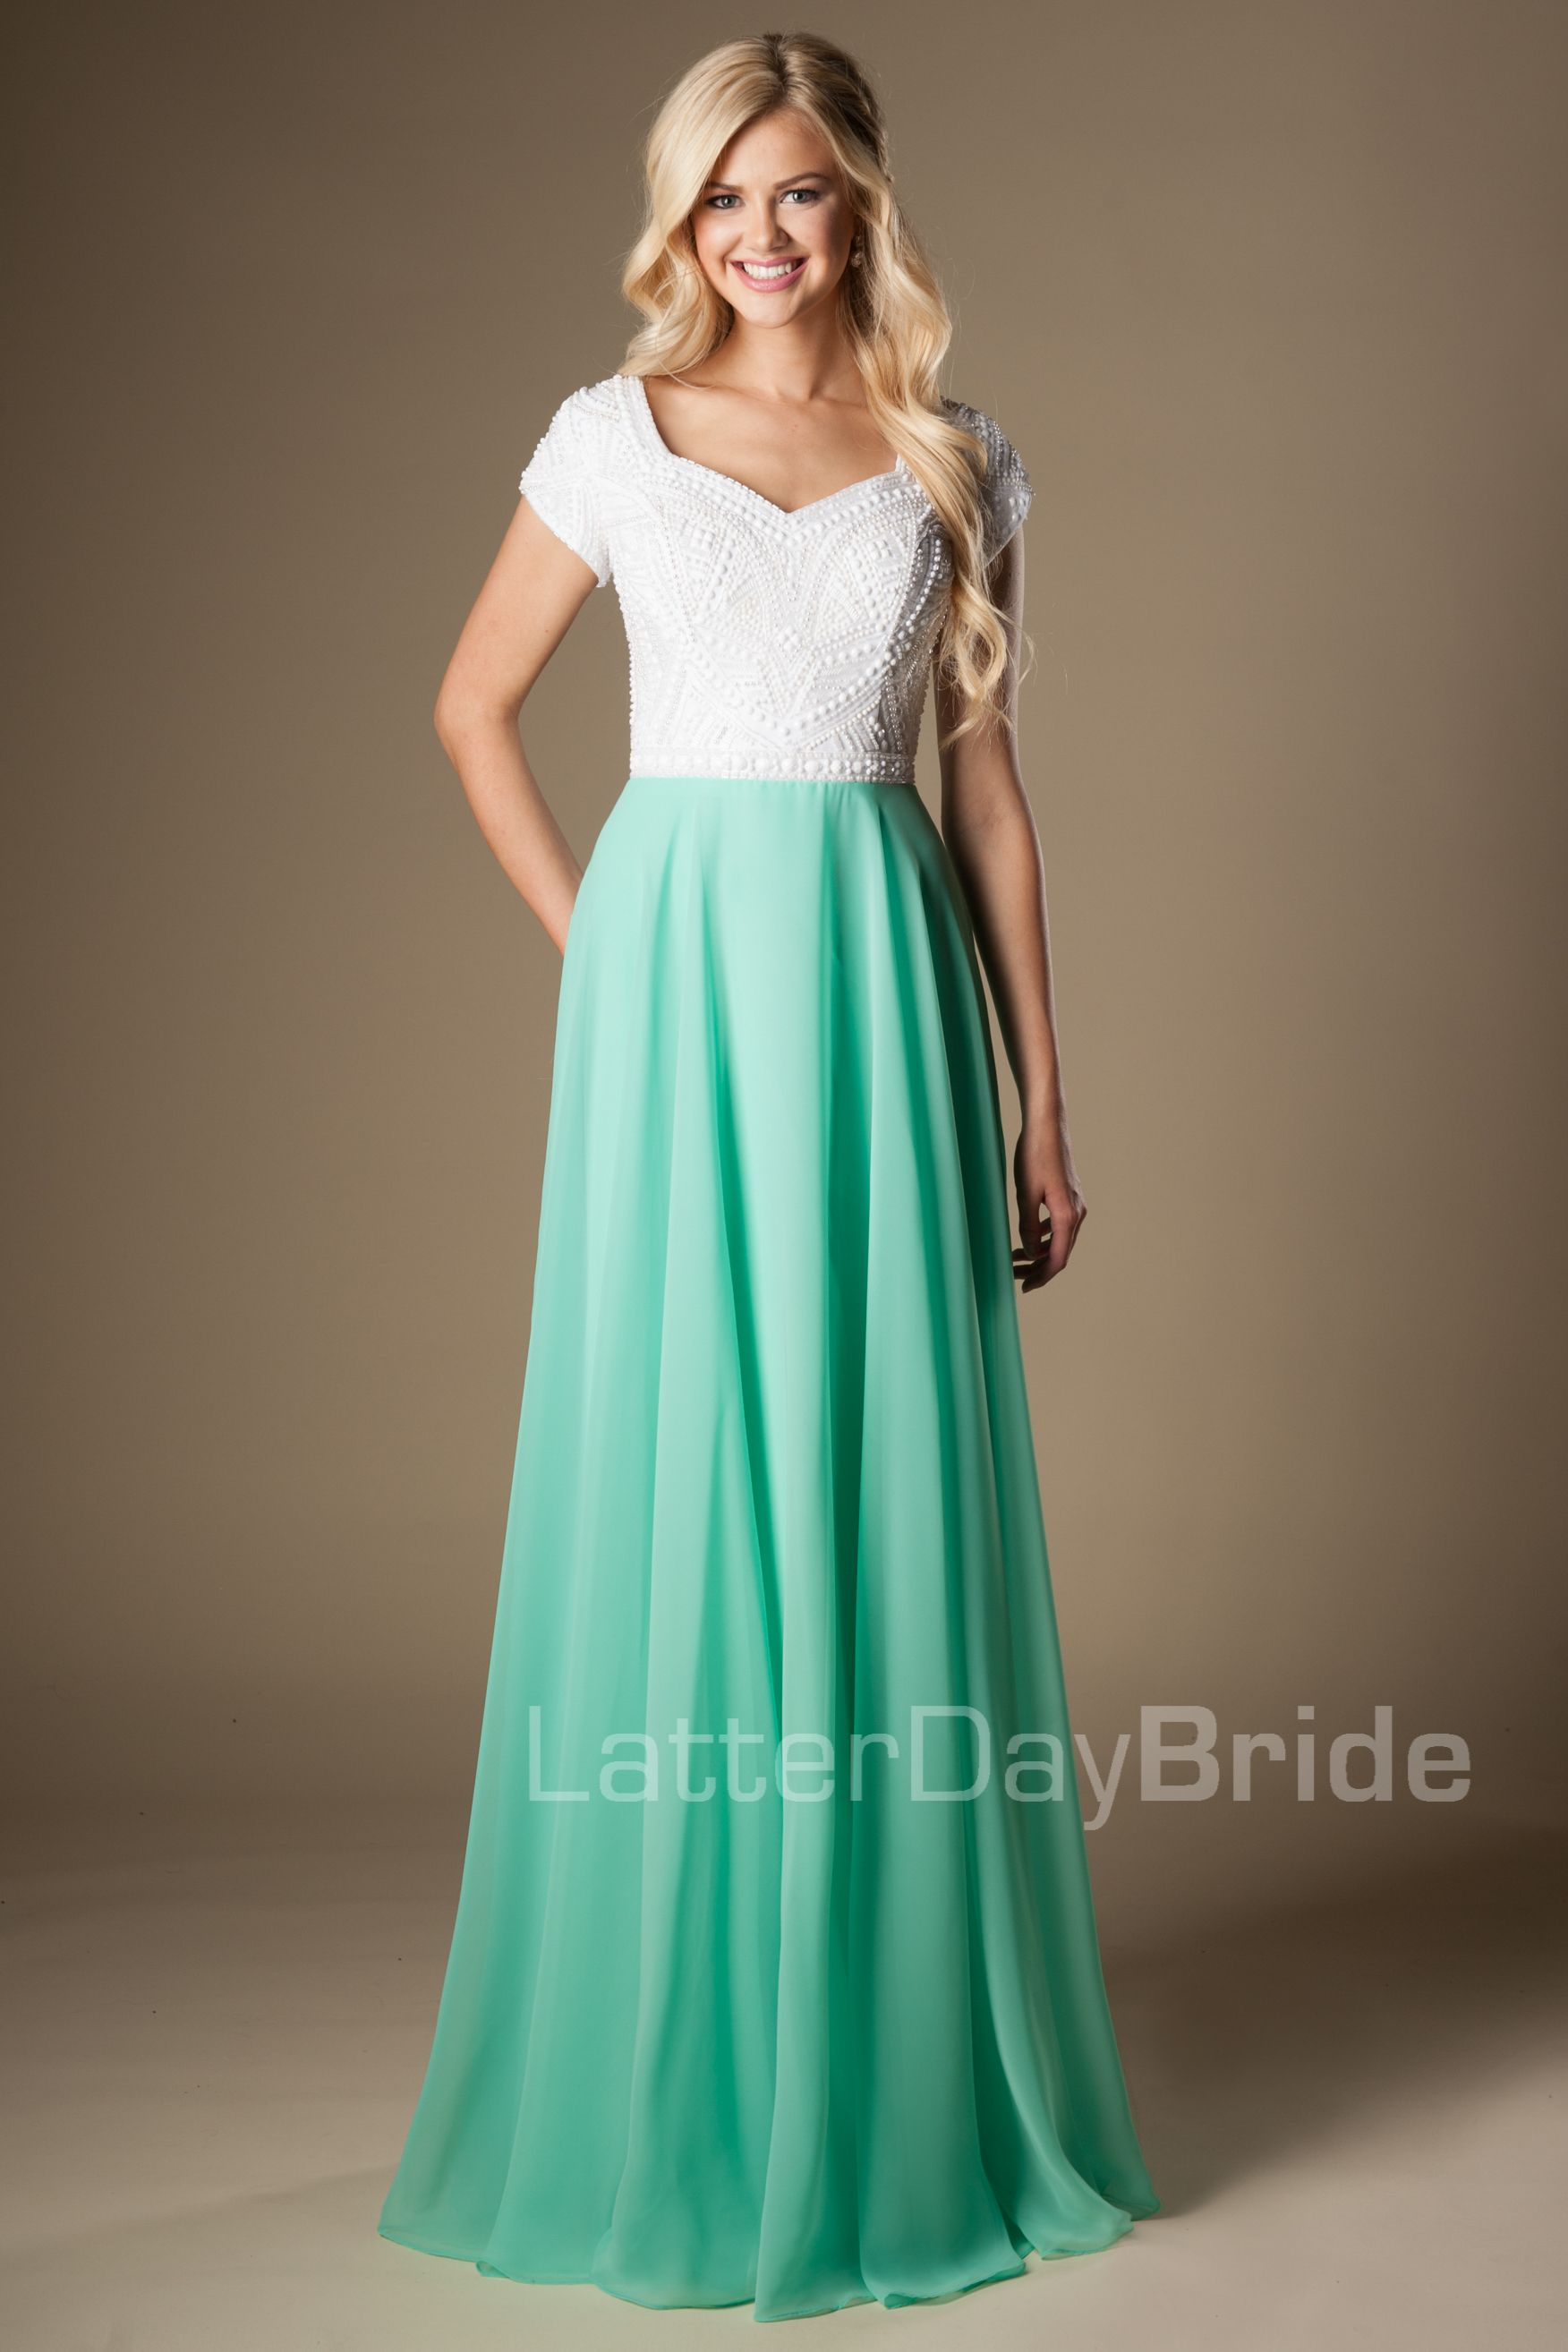 modest-prom-dress-jade-front-aqua.jpg | Fabulous Clothes that Amazes ...